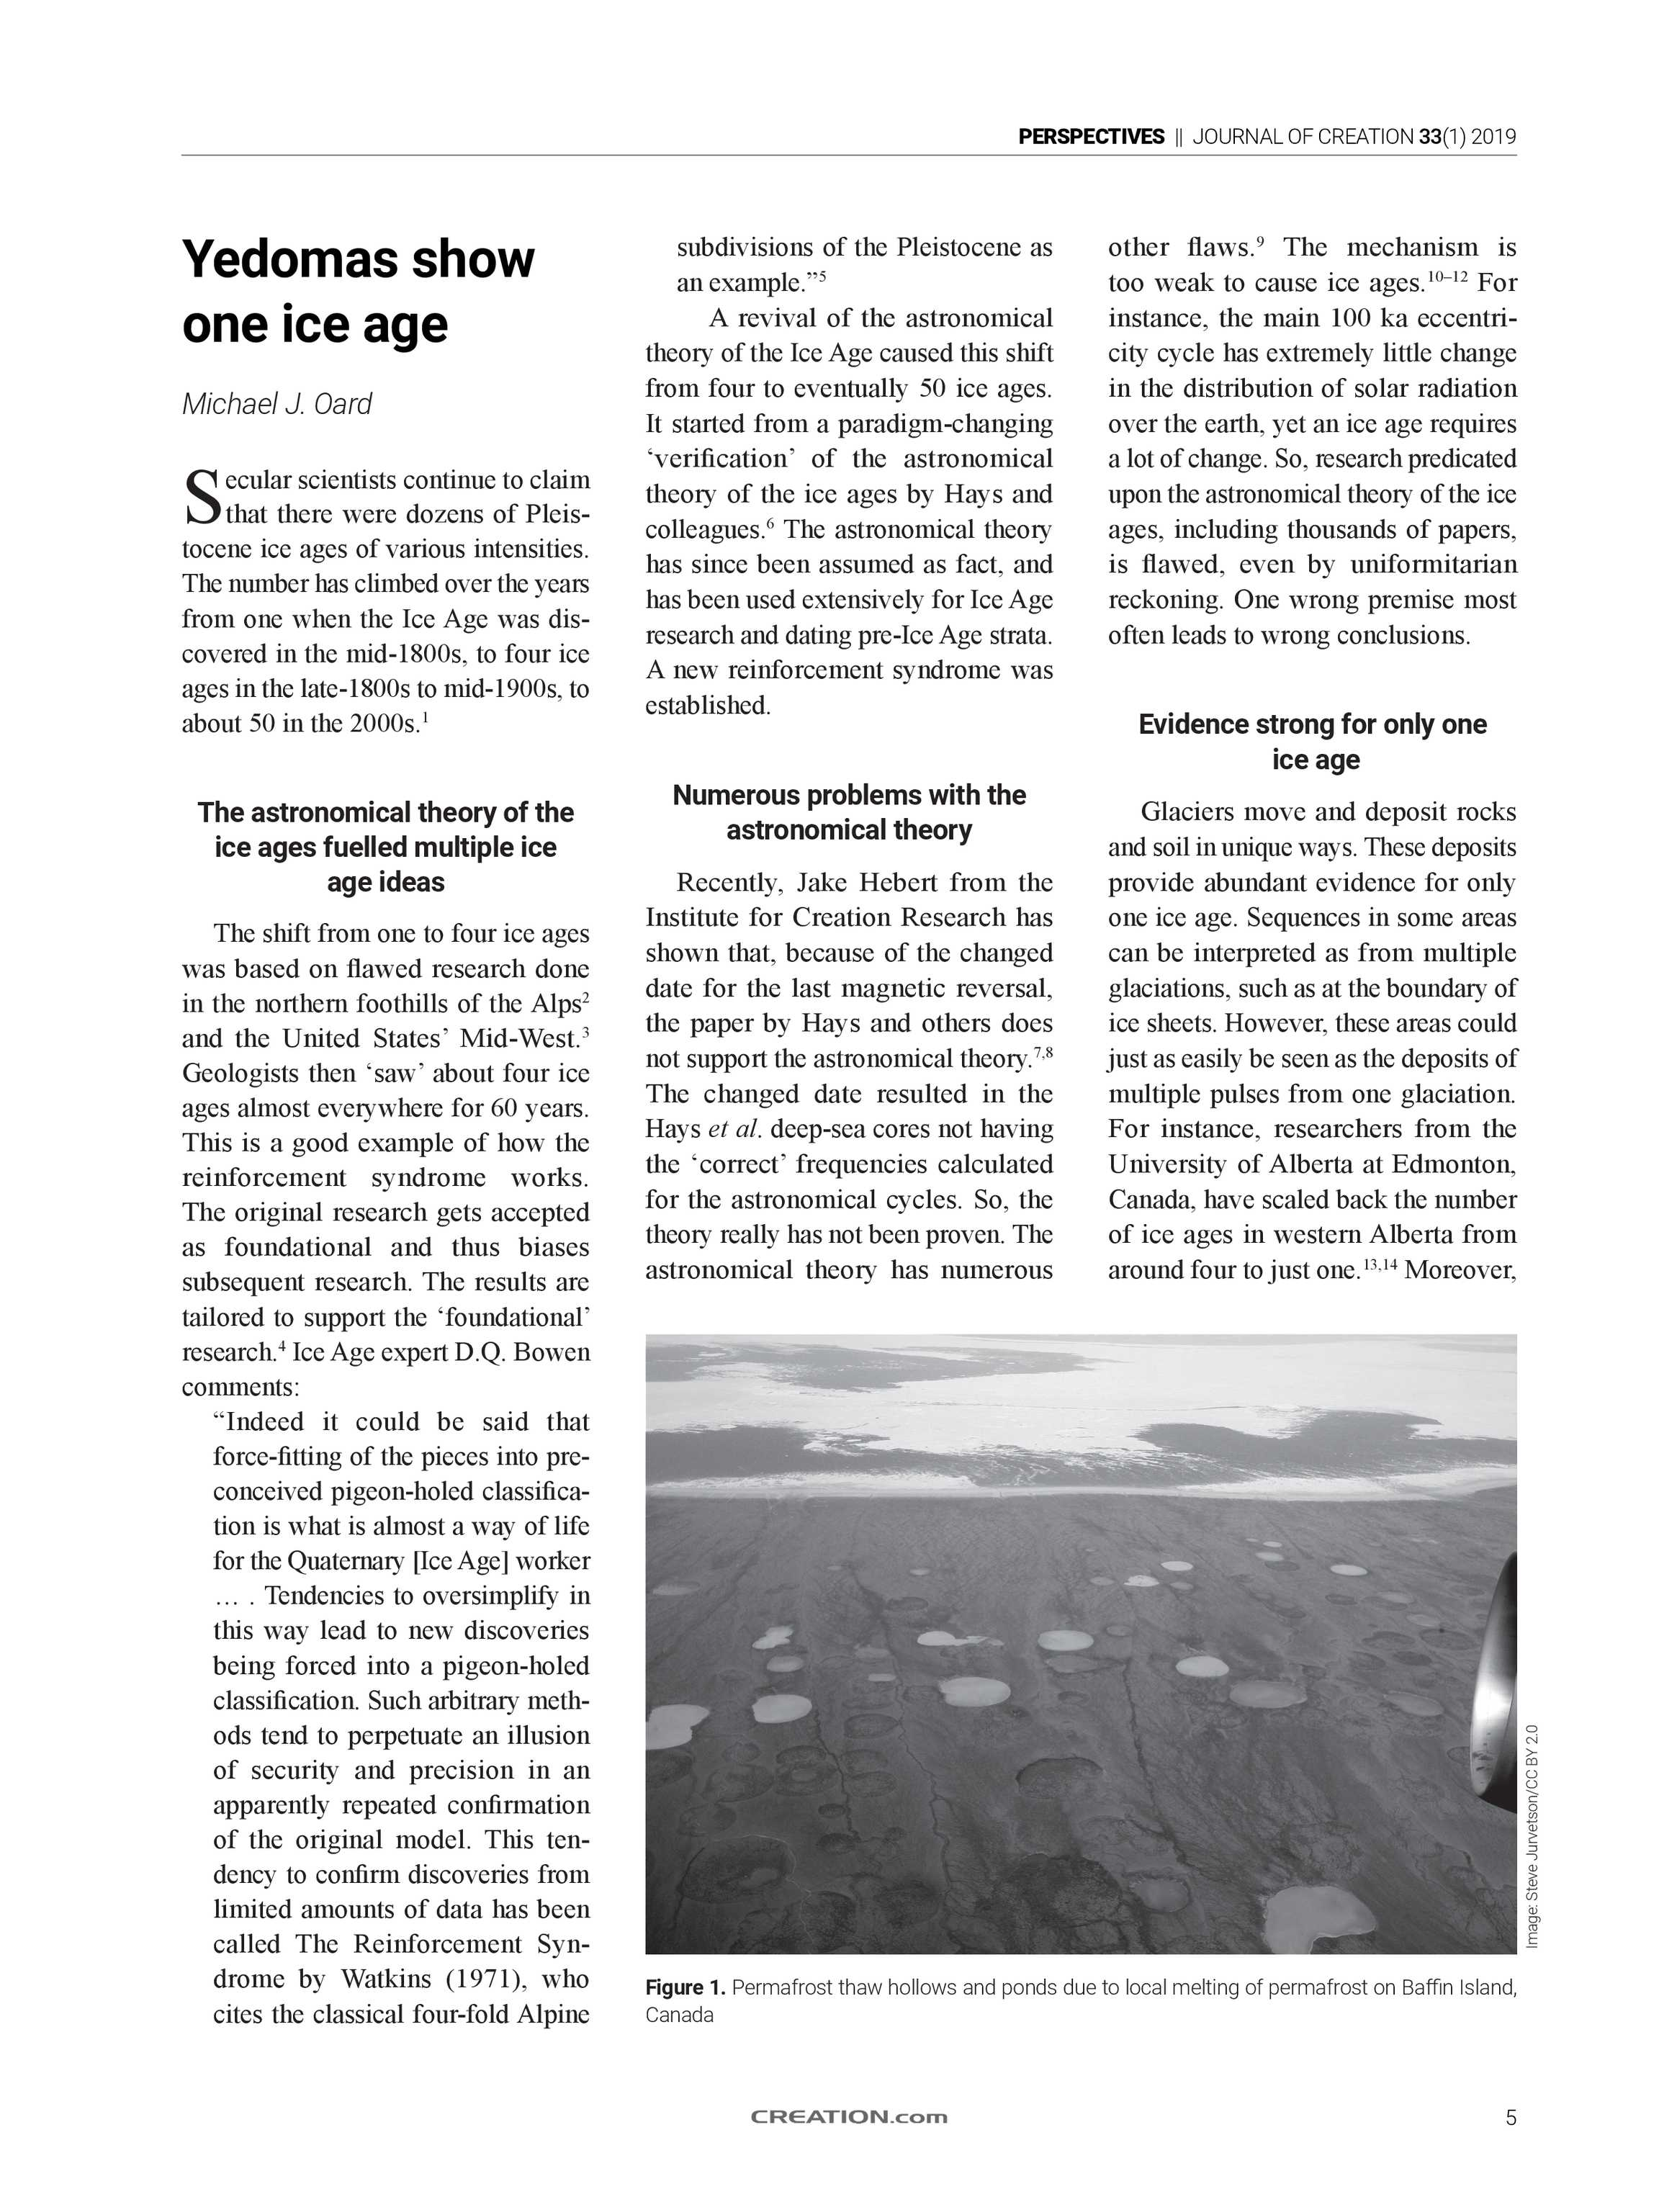 Journal of Creation - 2019 Volume 33 Issue 1 - page 5